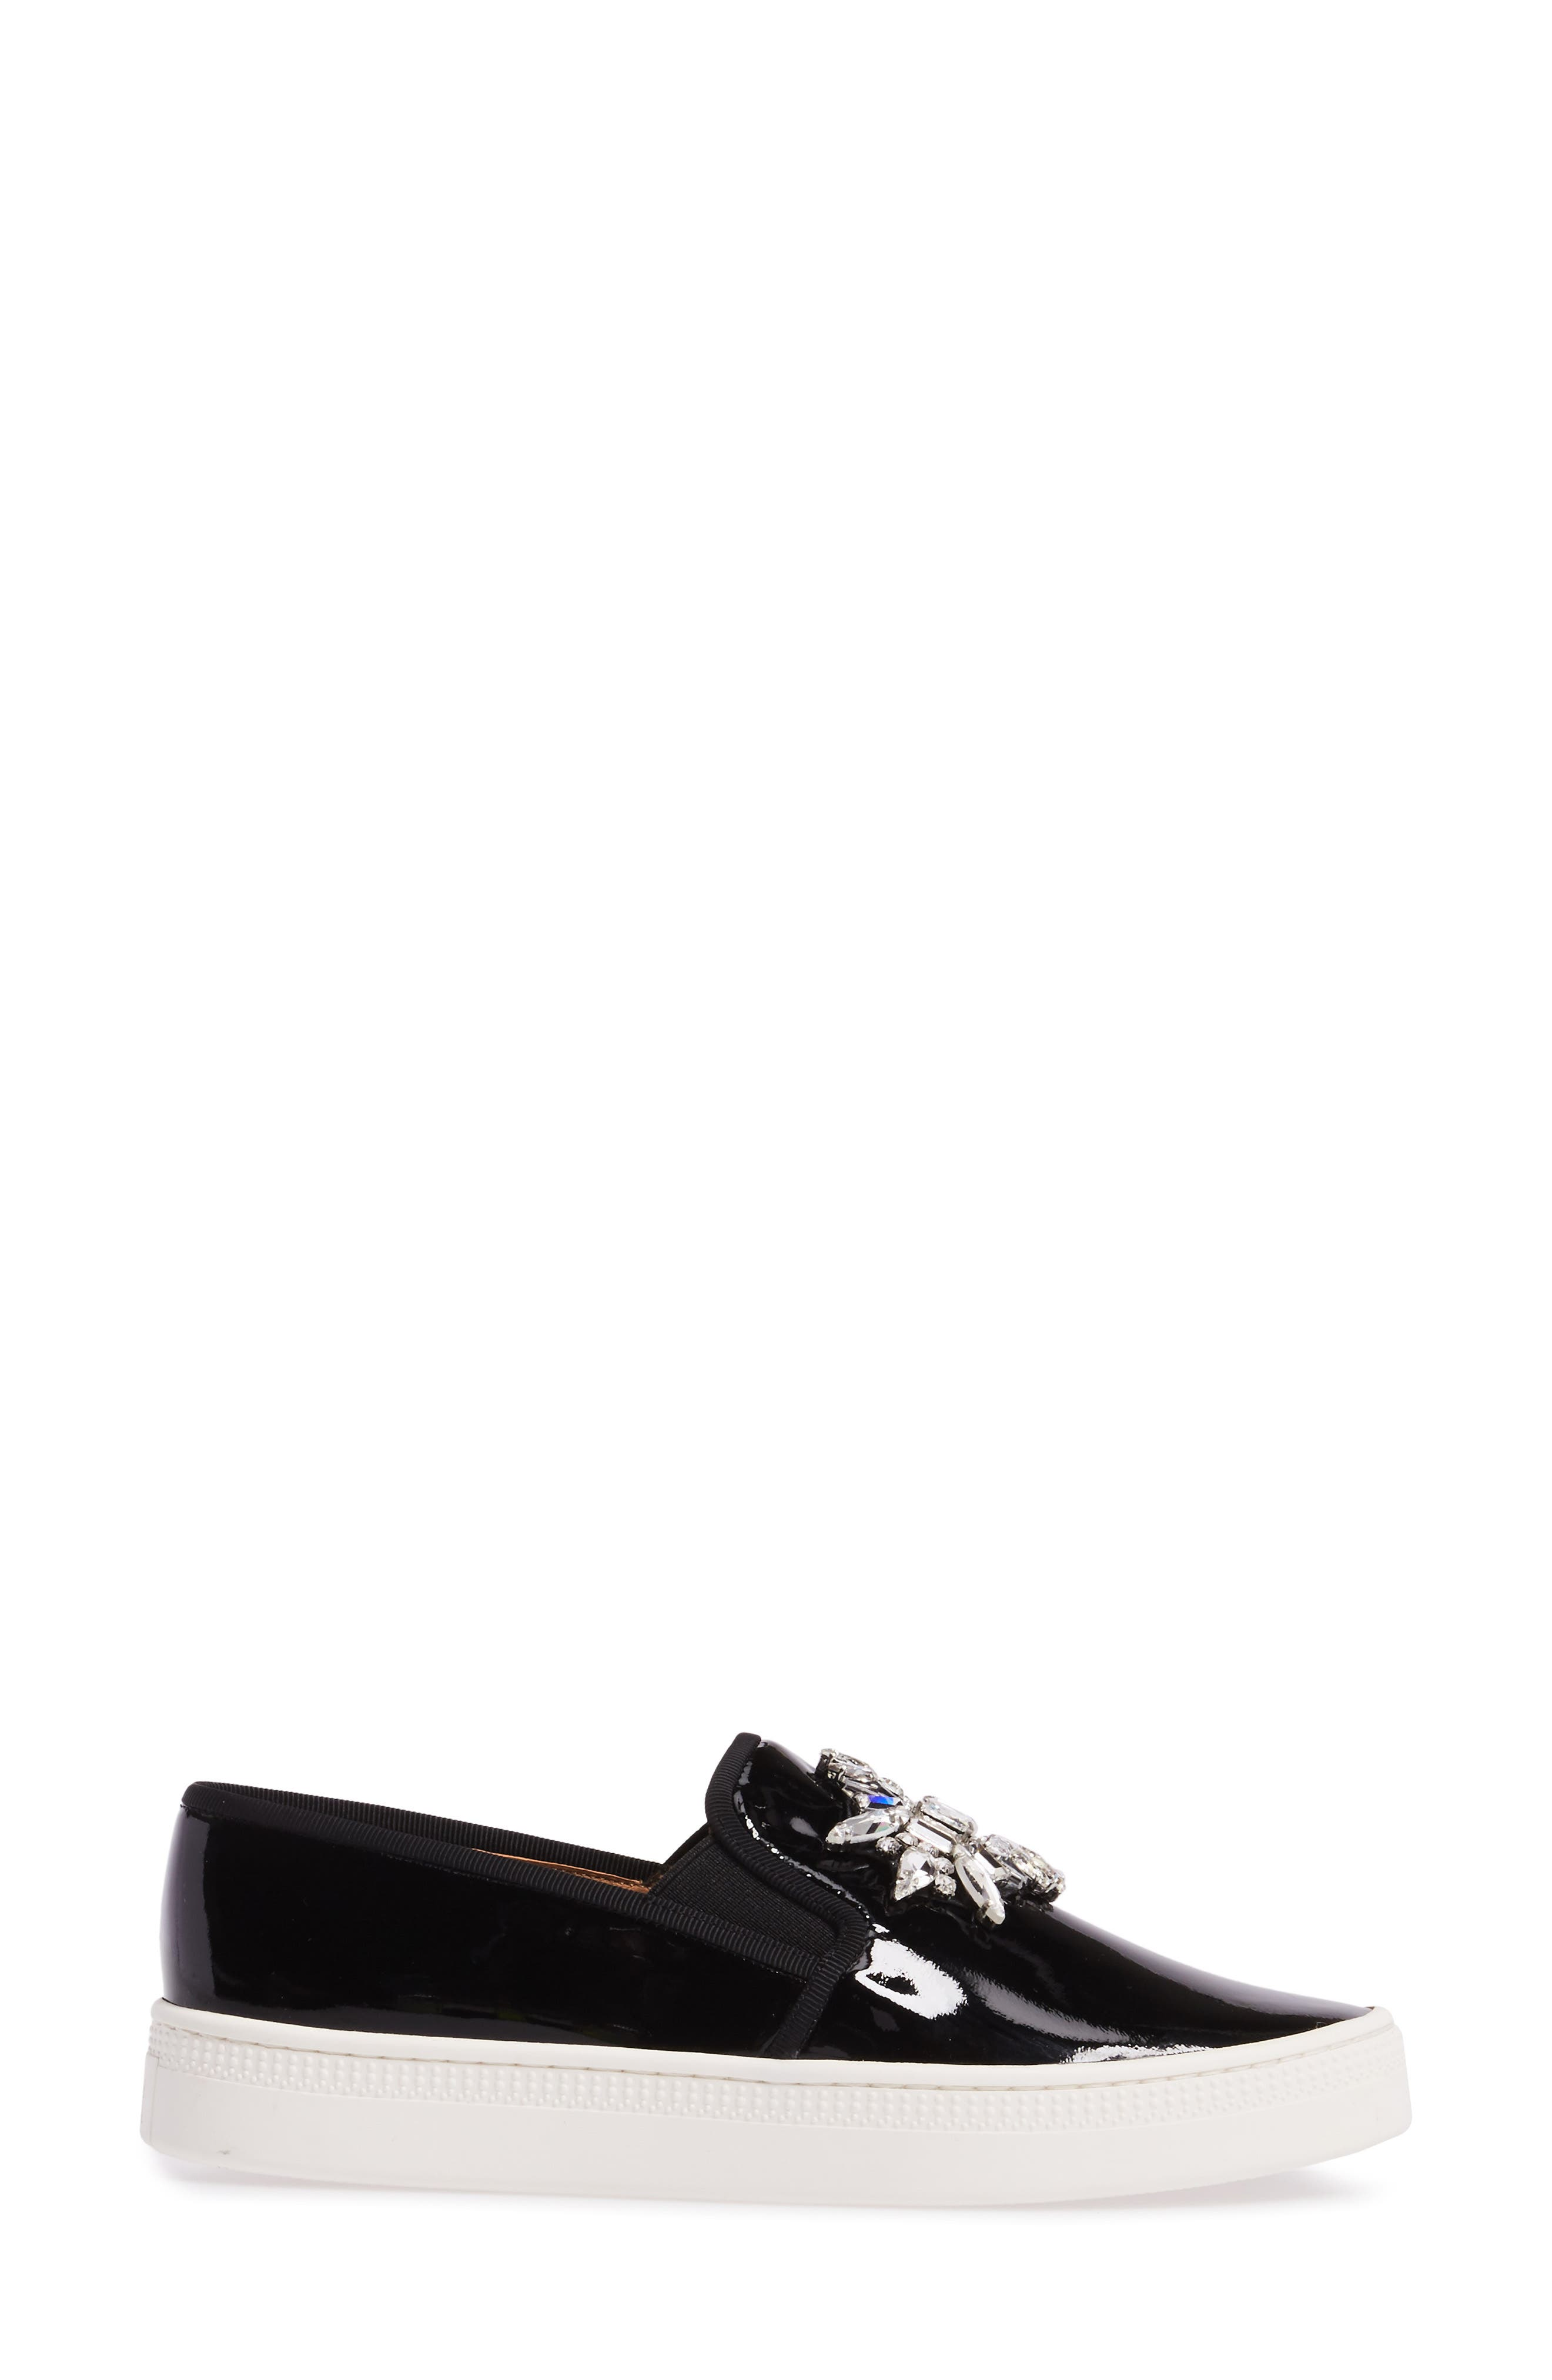 Badgley Mischka Barre Crystal Embellished Slip-On Sneaker,                             Alternate thumbnail 3, color,                             011